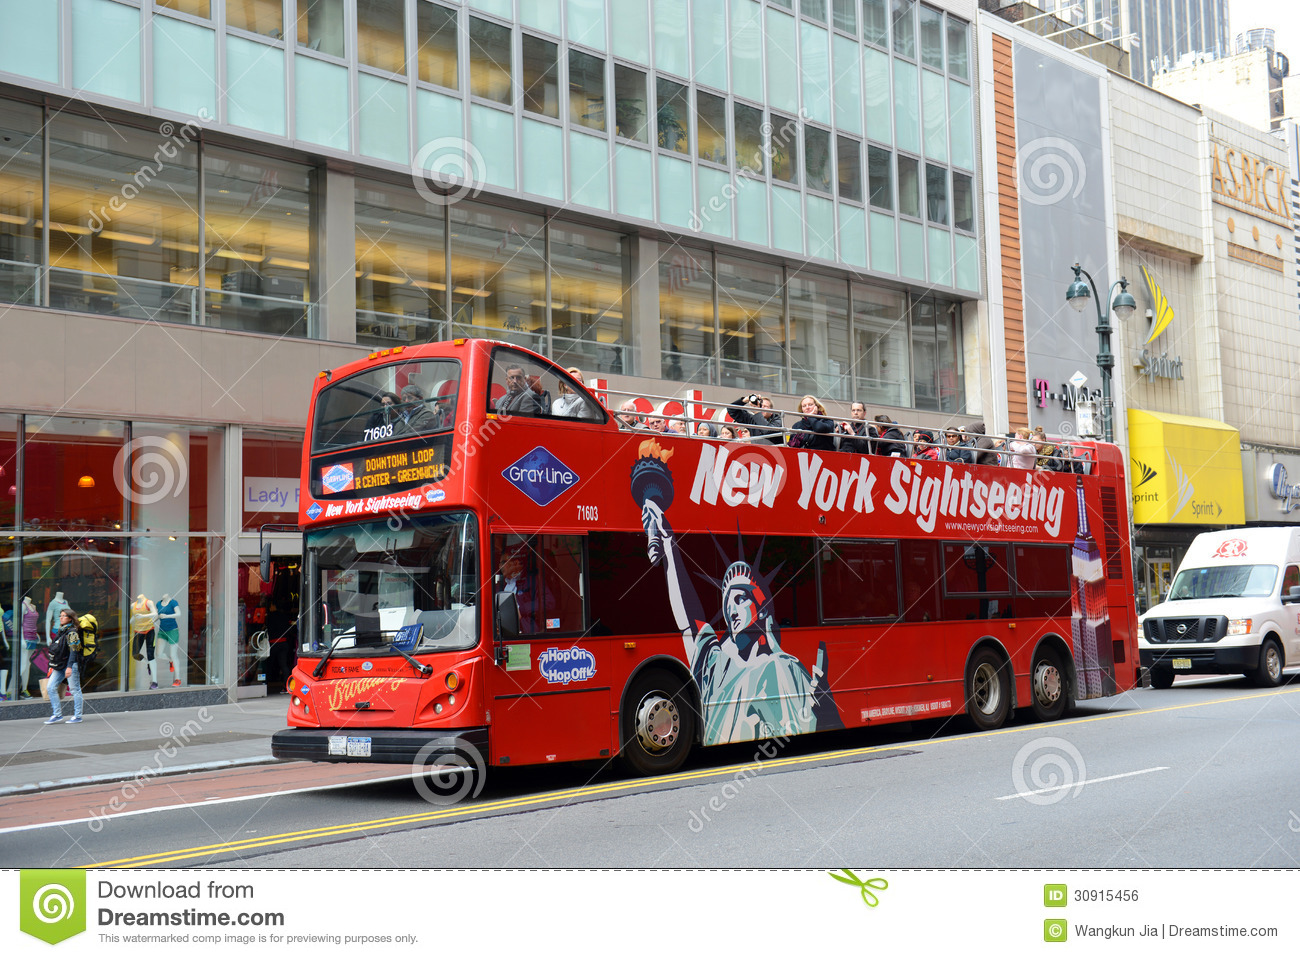 Which New York Bus Tours Are Best? This post reviews and compares the various different bus tour options available to you in NYC, including hop-on-hop-off, fully guided, themed and night tours.